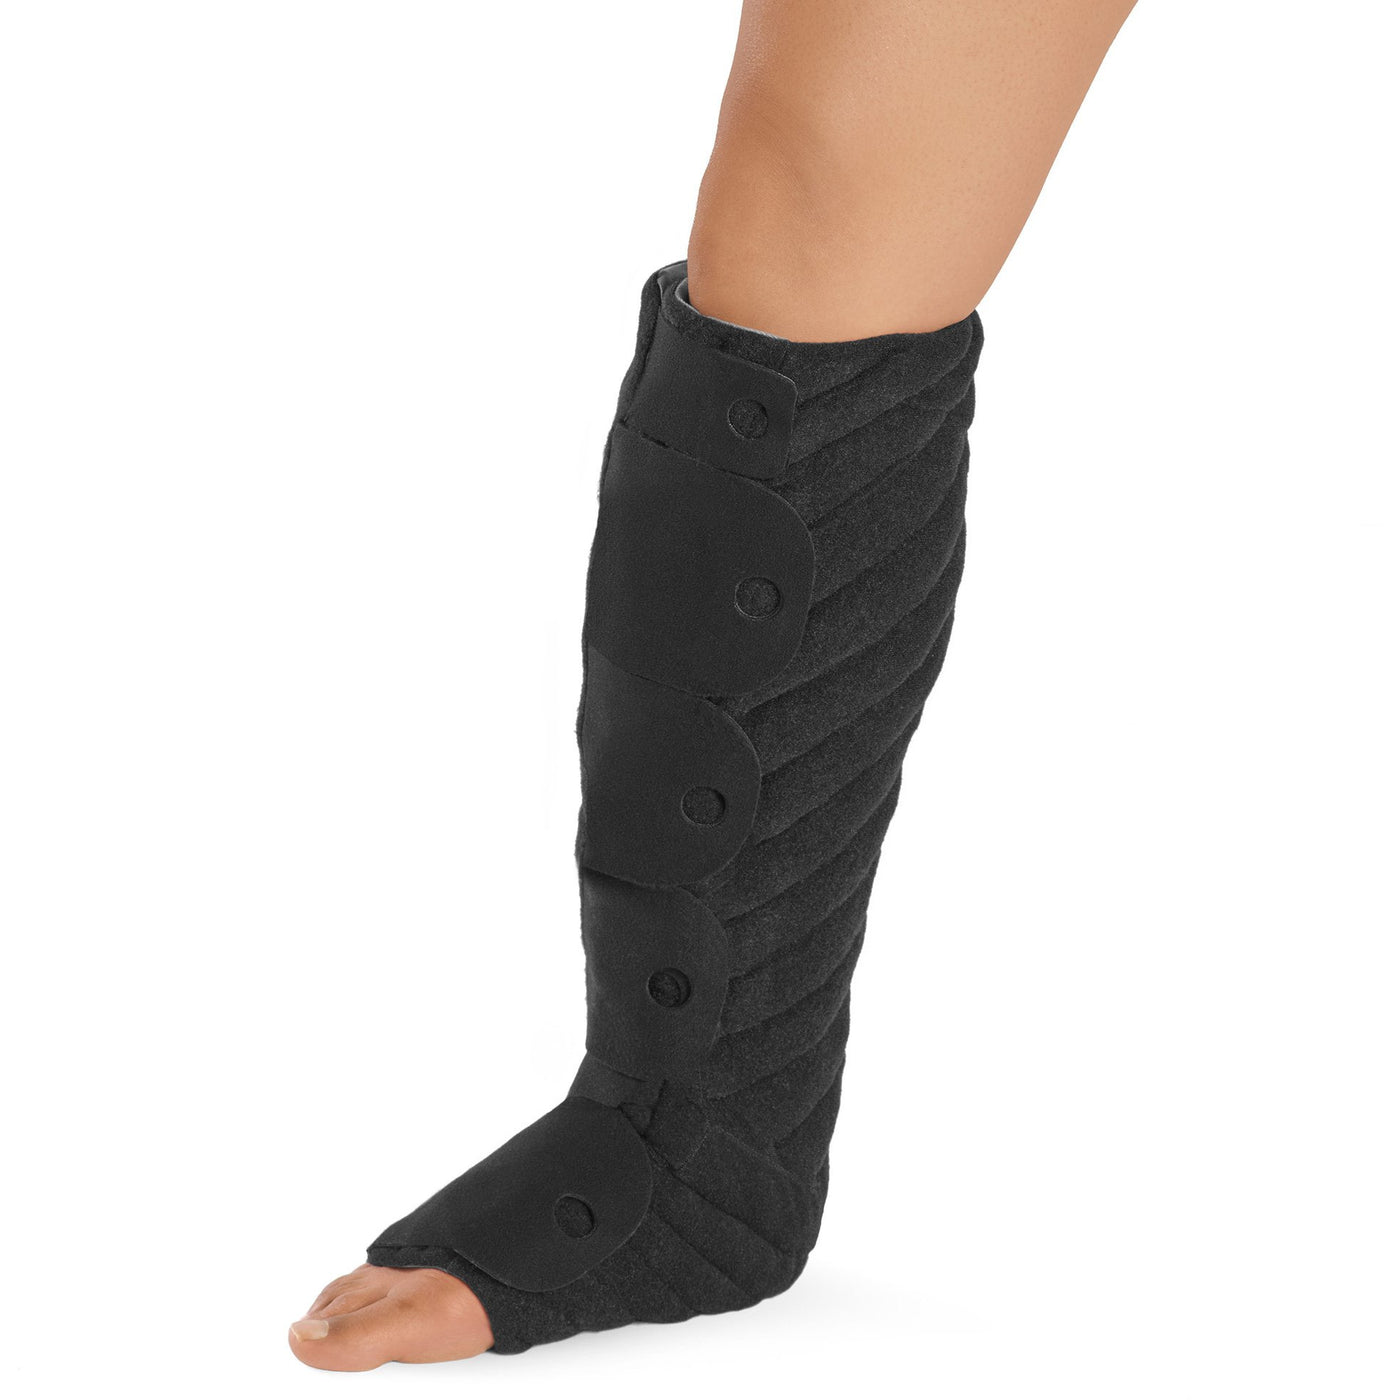 d5c5fccdbd4a32 Solaris Tribute Compression Wrap - Lower Leg - Below Knee ...